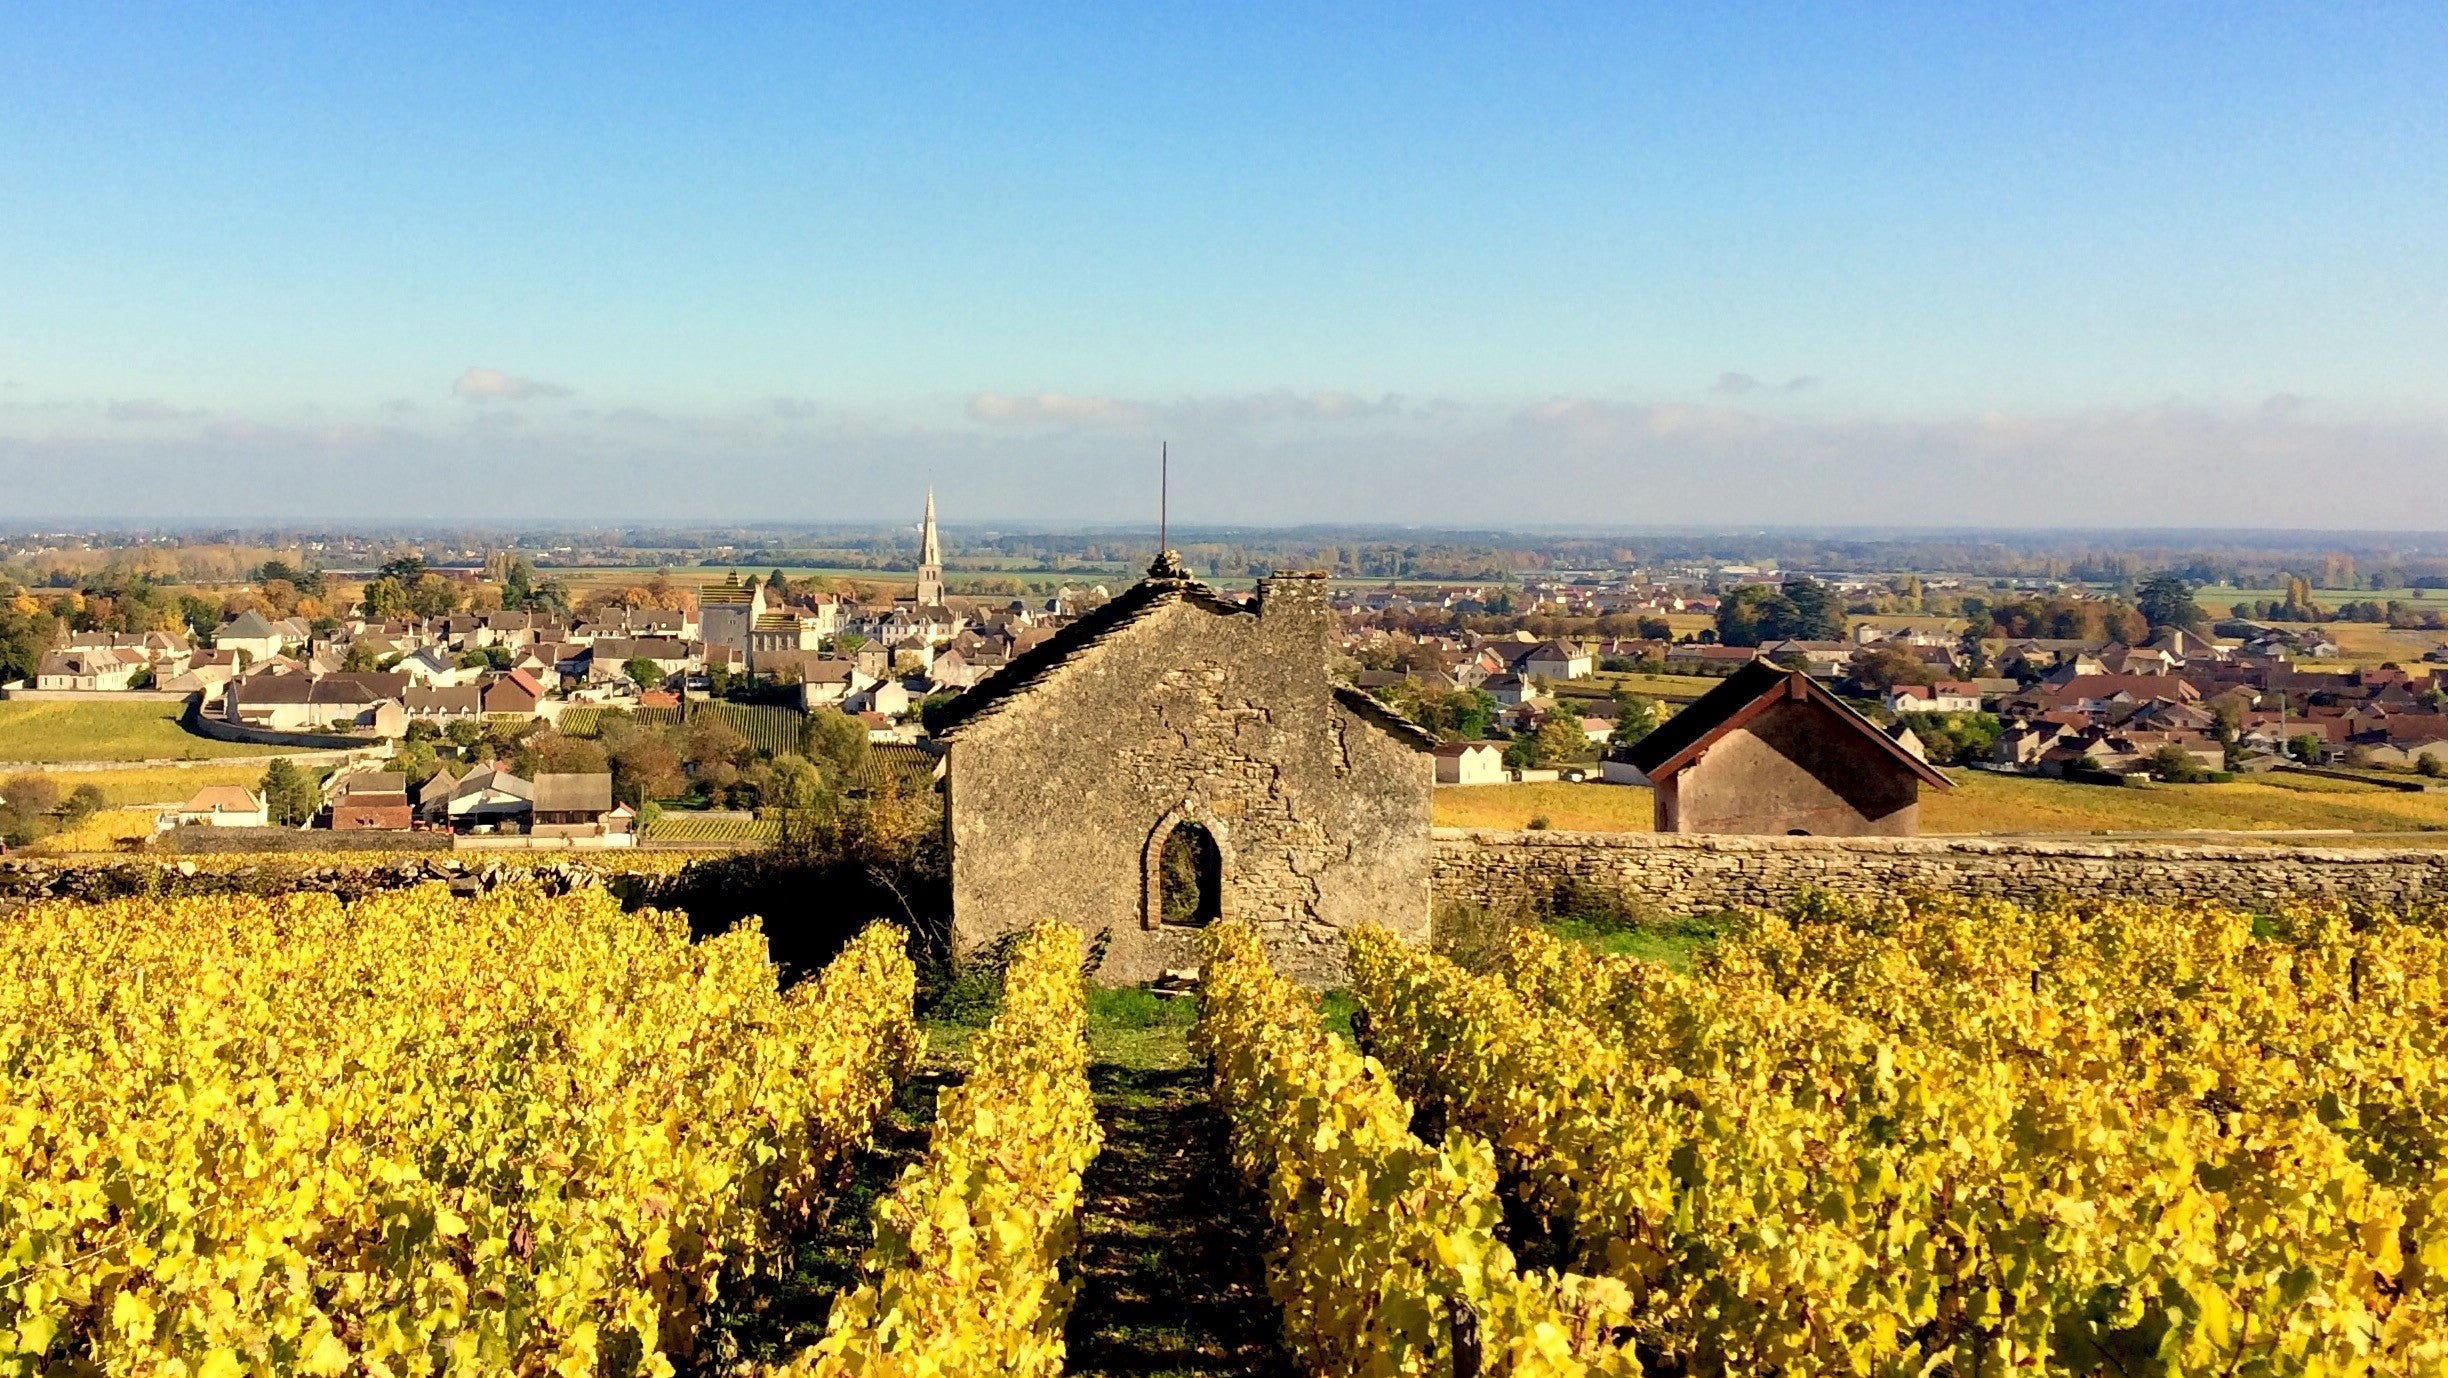 Domaine Rougeot overlooking the landscape of Meursault Burgundy France